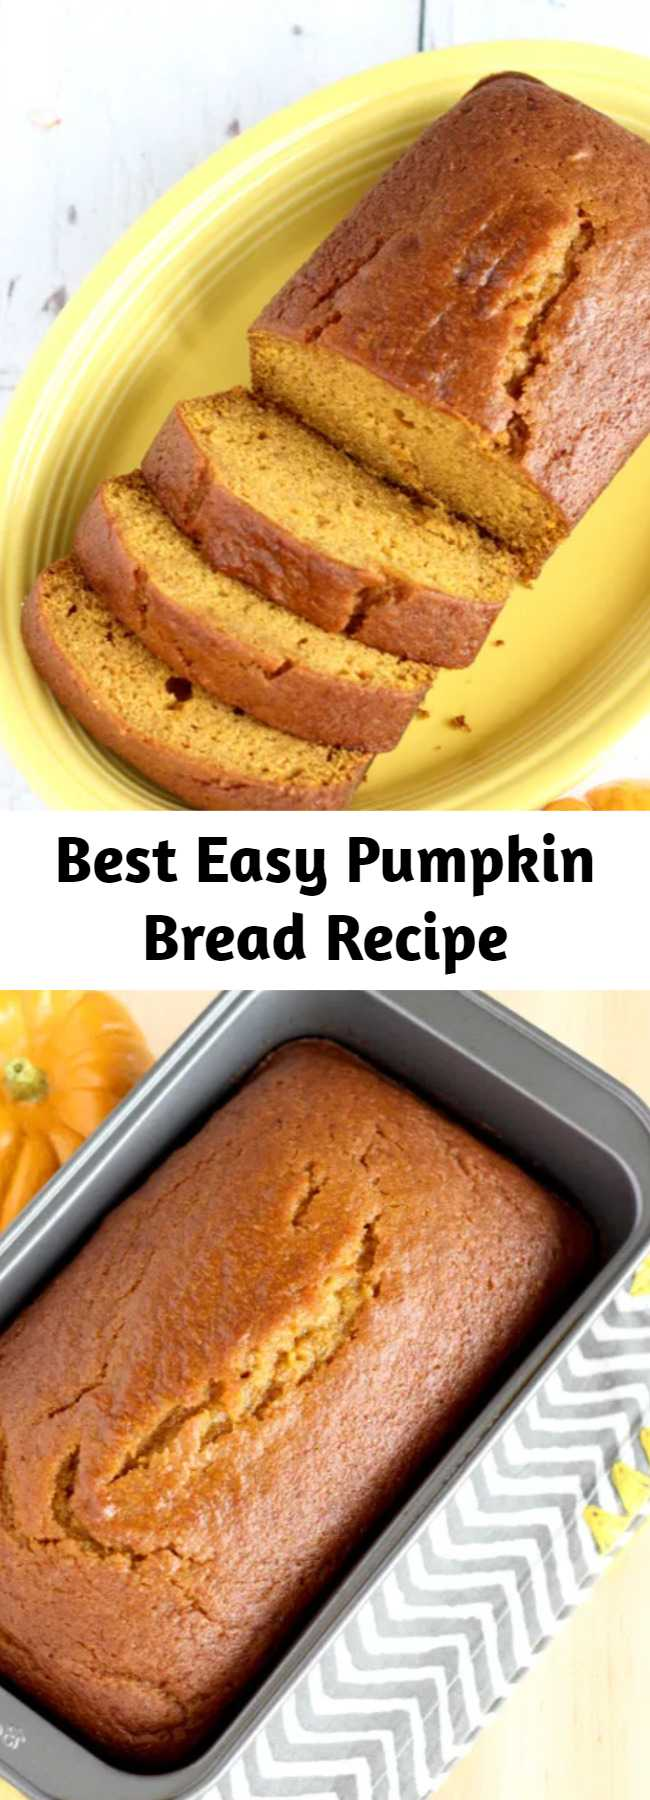 Best Easy Pumpkin Bread Recipe - Get ready for a little Pumpkin bliss with this World's Best Pumpkin Bread Recipe! Seriously… it's even better than Starbucks!  And you can keep it easy using Libby's Pumpkin from the can!  Or… get wild and crazy and make your own homemade pumpkin puree from your backyard garden pumpkins! The choice is yours!